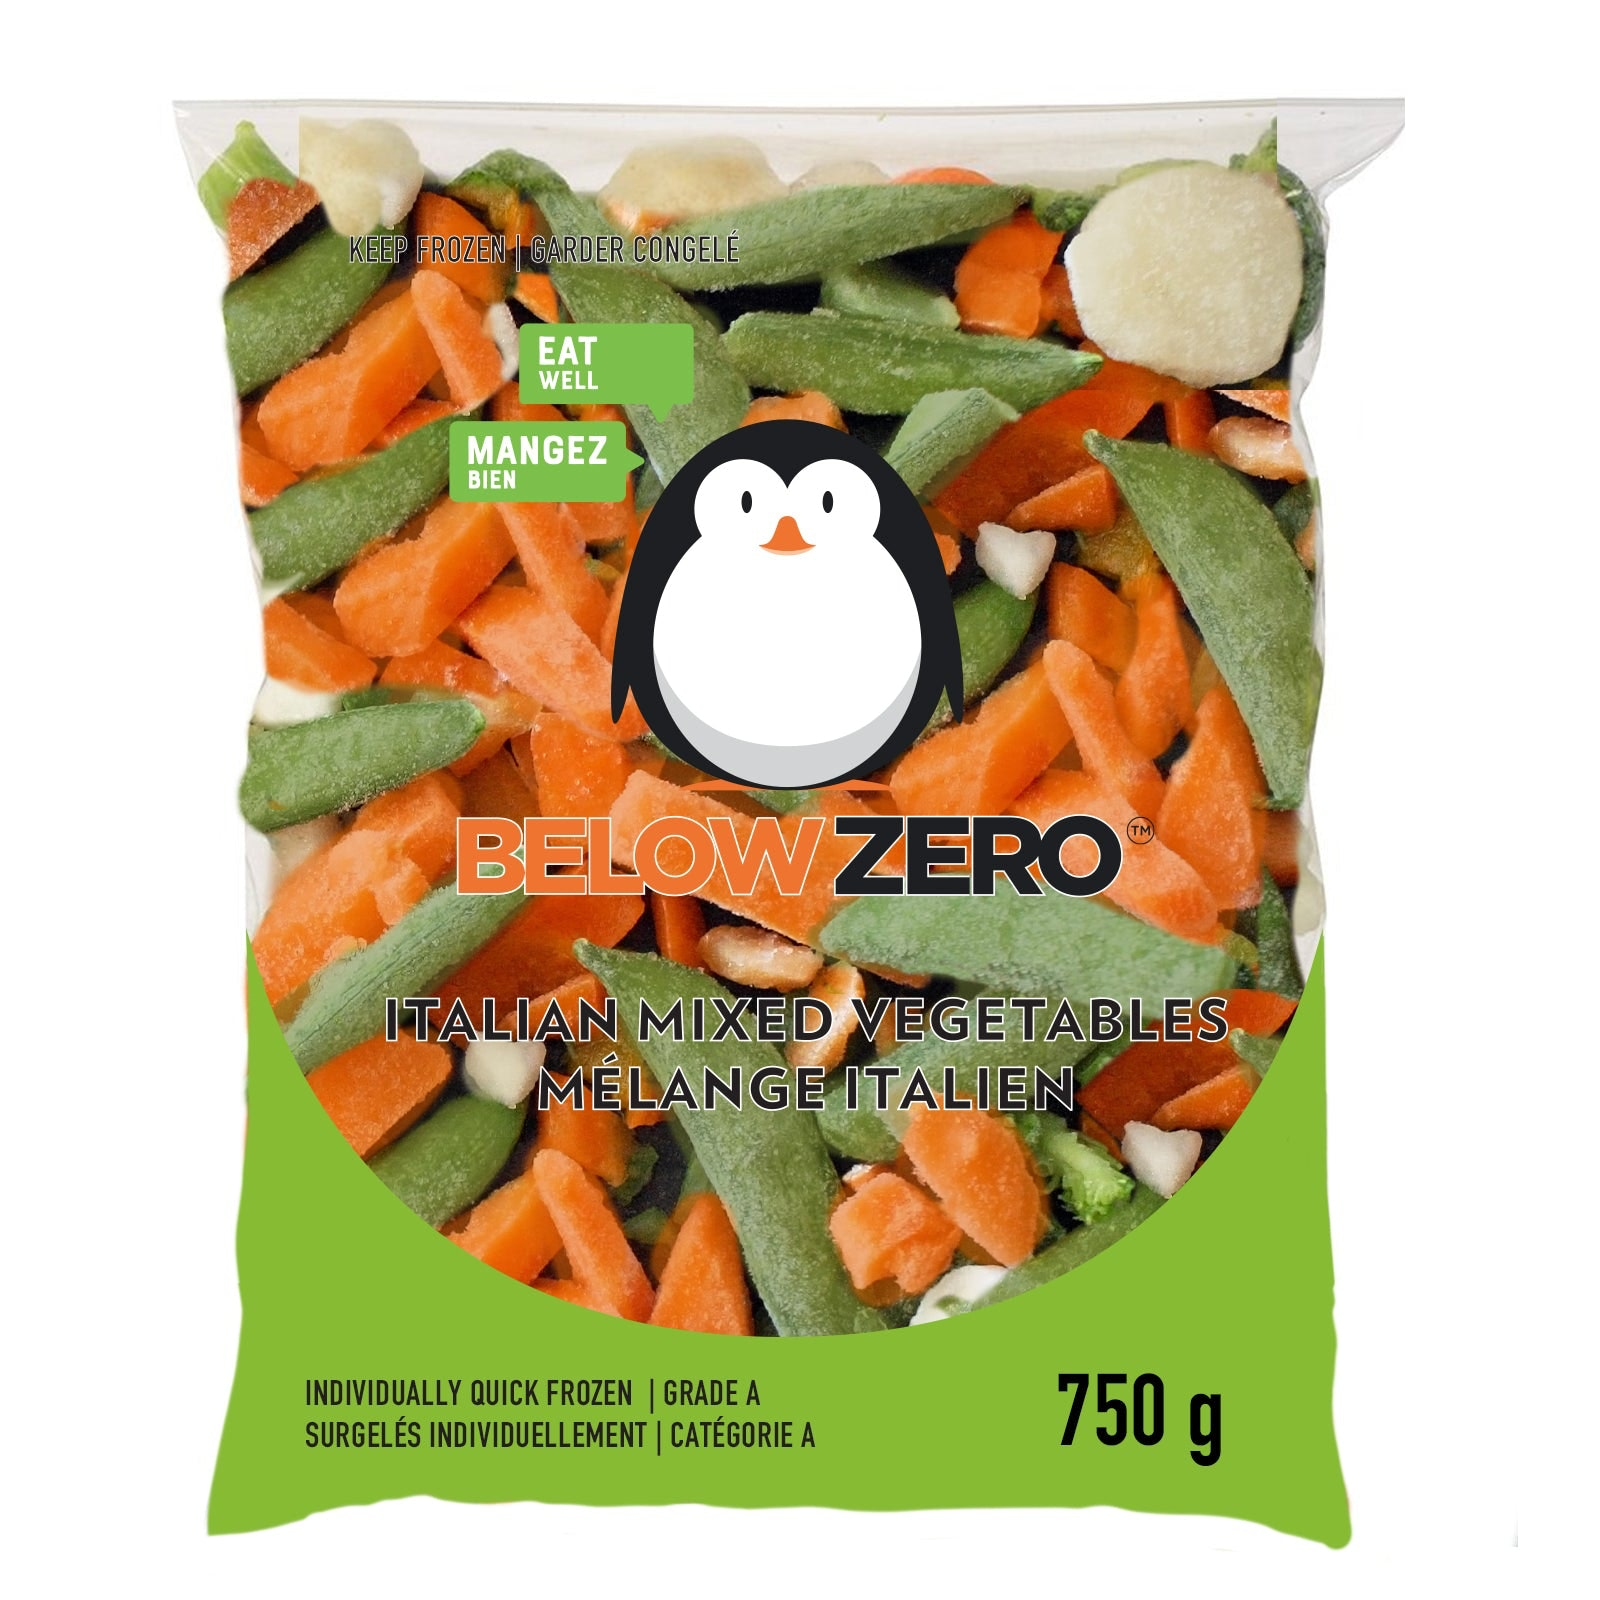 BELOW ZERO Italian Mixed Vegetables